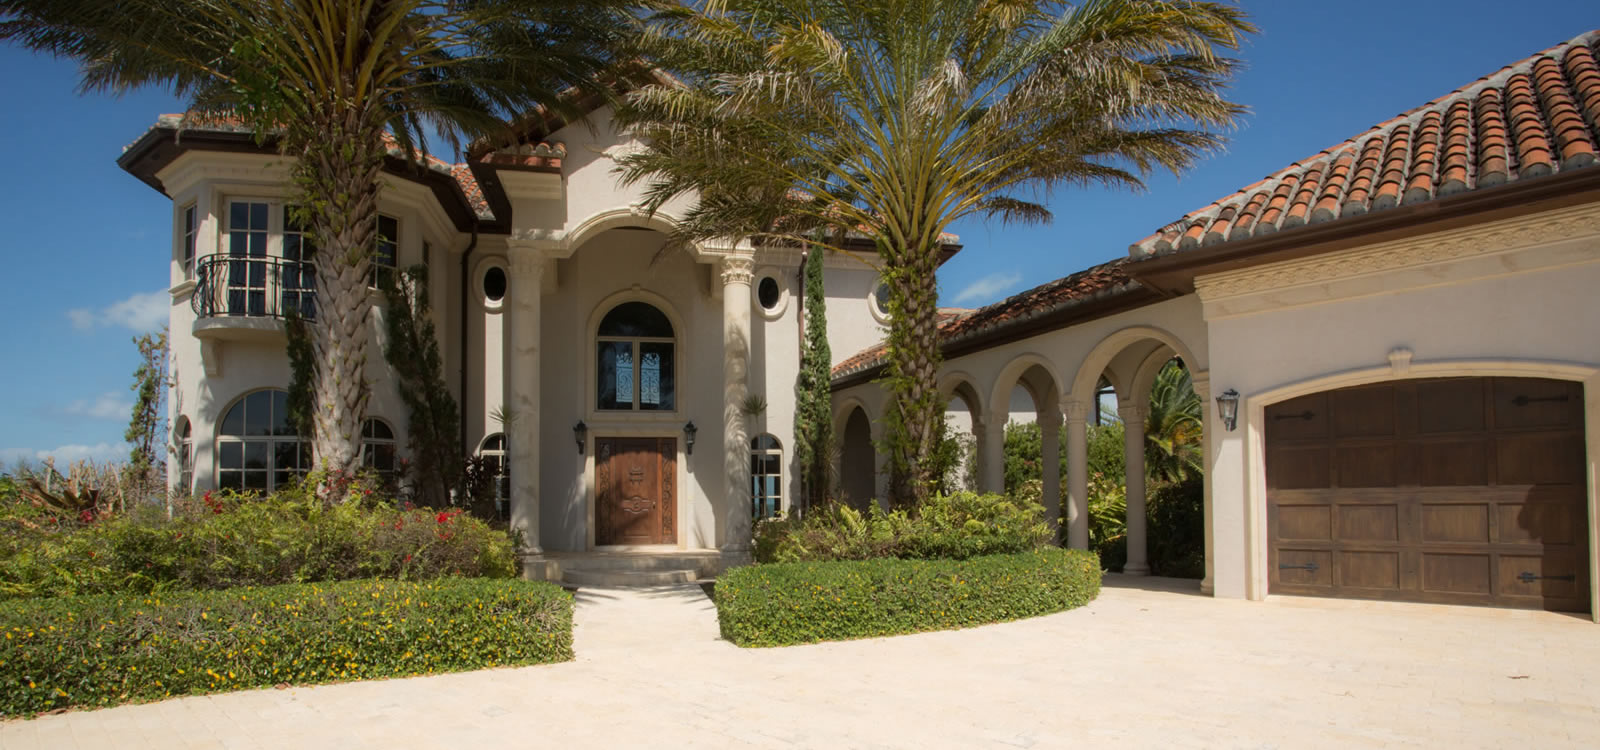 Property Cayman   Real Estate Experts in the Cayman Islands